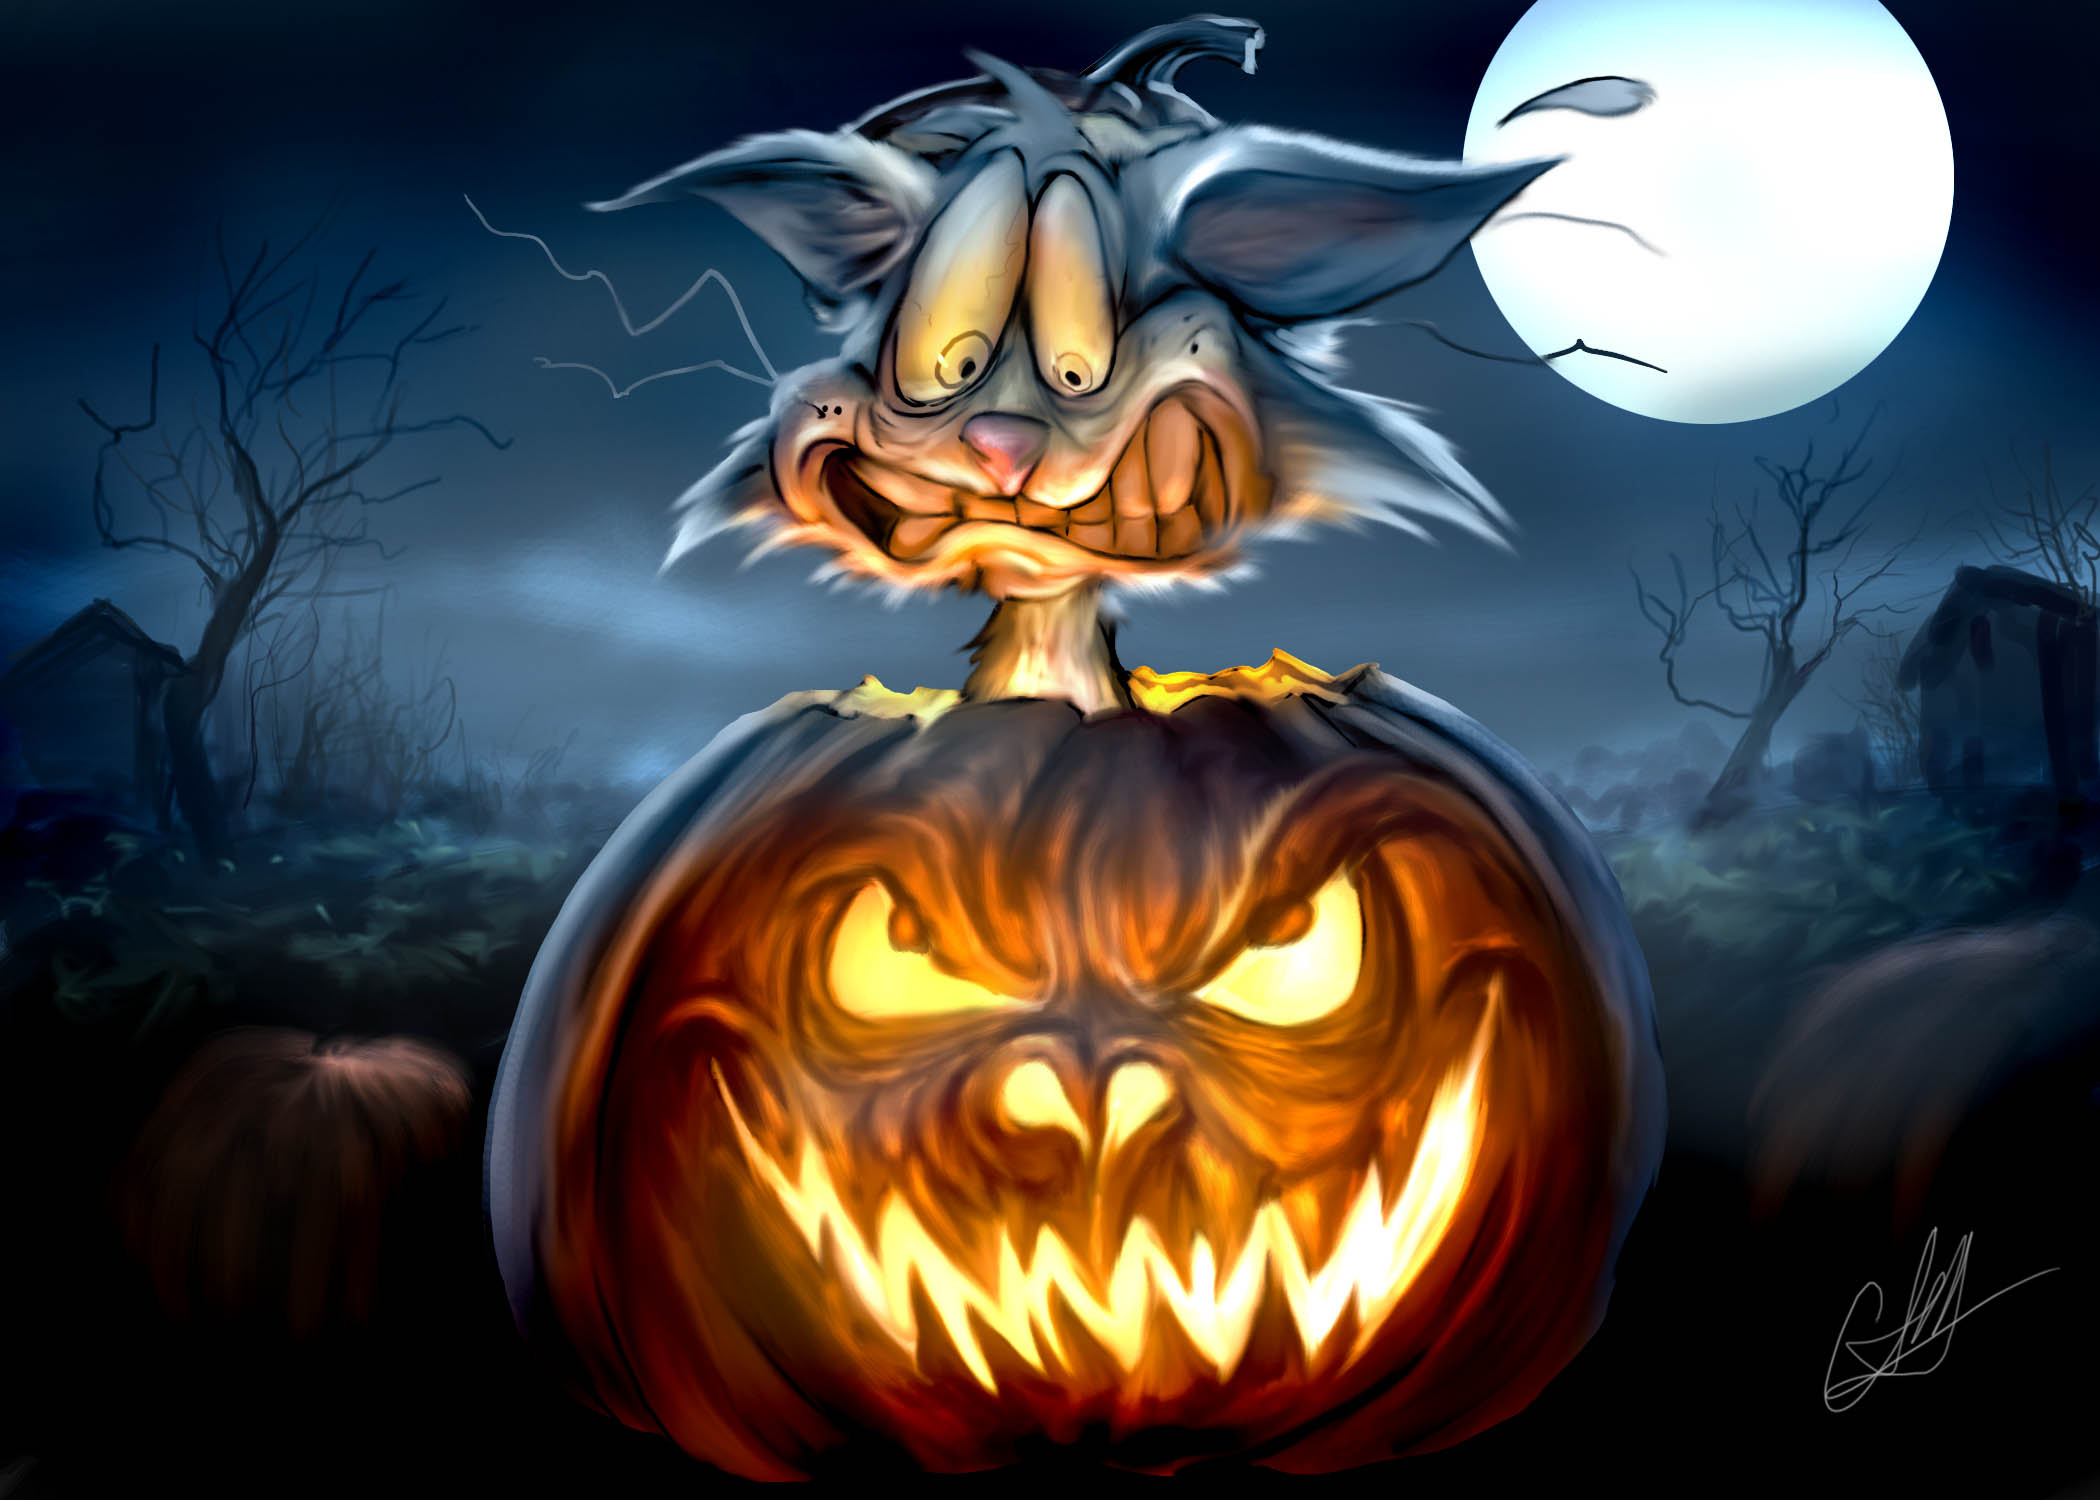 Pumpkin-Scarecrow-Haloween-Wallpaper